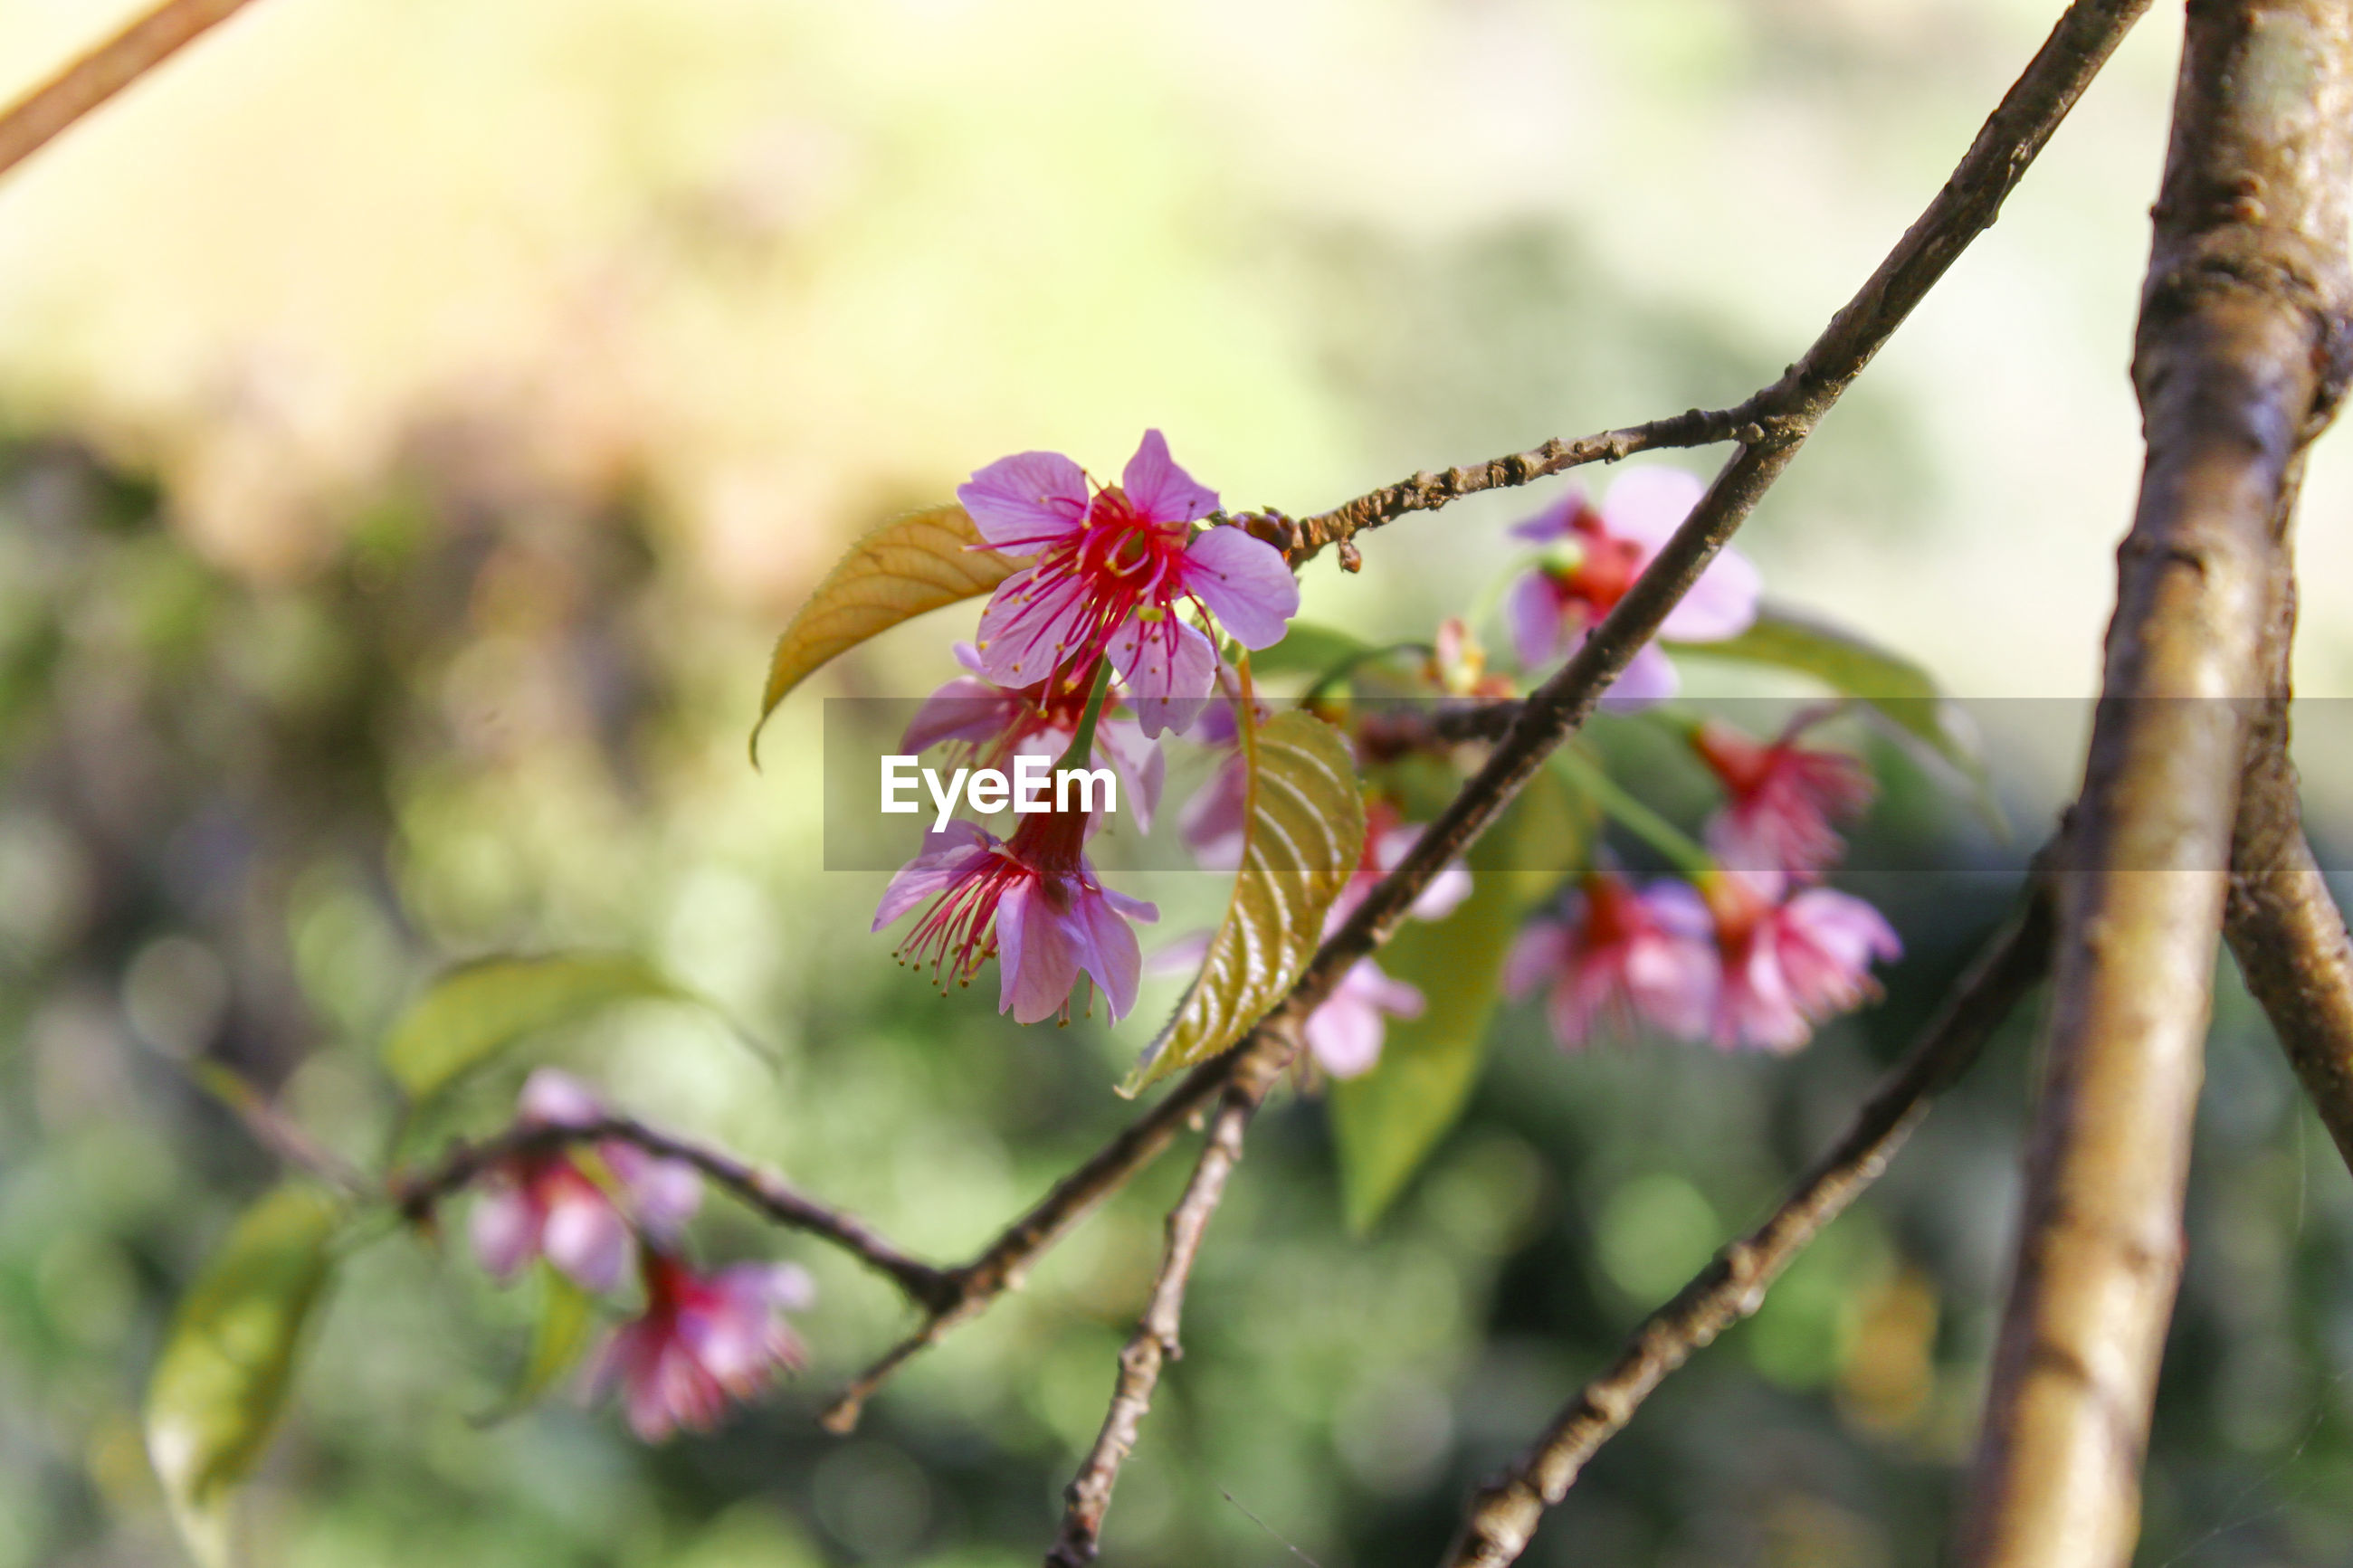 CLOSE-UP OF PINK FLOWER ON BRANCH